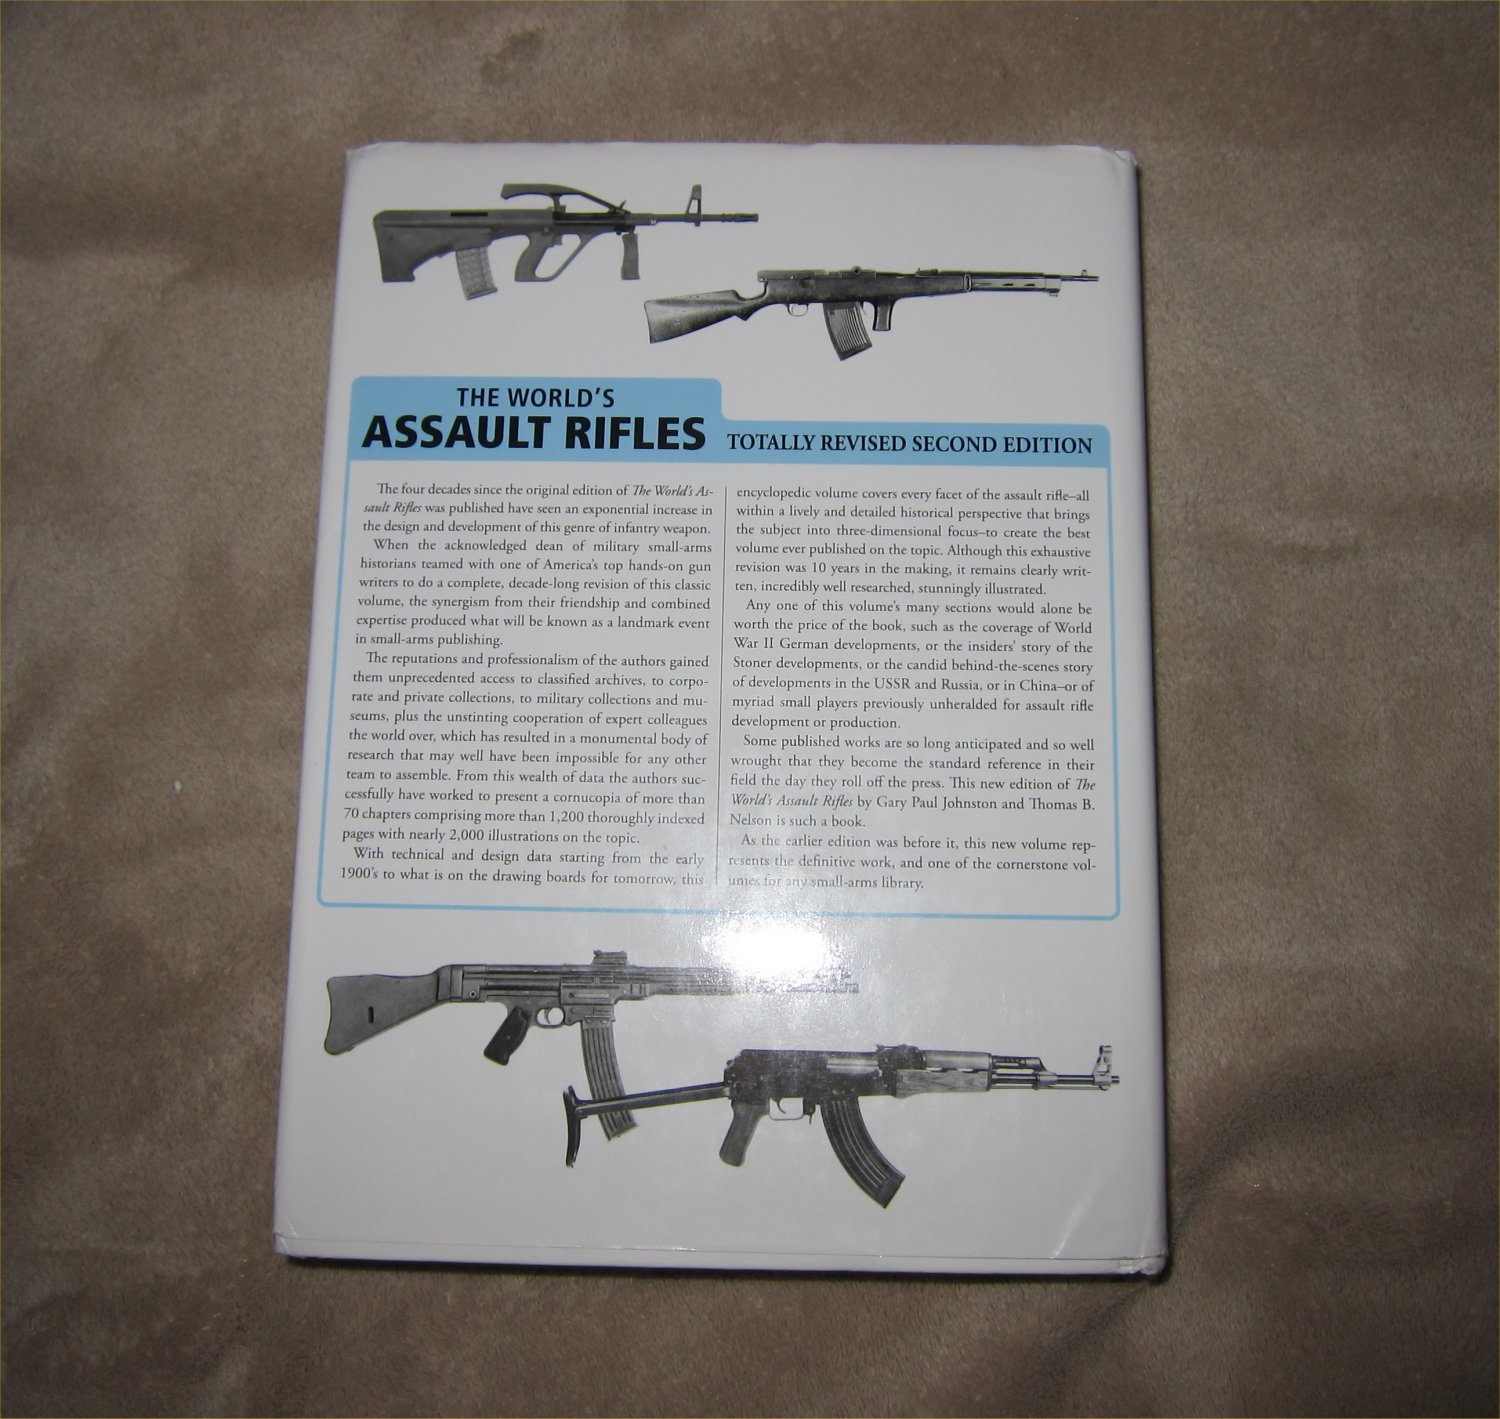 Assault Rifles of the World Book Gary Paul Johnston 10 <!  :en  >The Worlds Assault Rifles: Best and Most Complete Book on Military Infantry Assault Rifles (and Battle Rifles) Ever Written?  DefenseReview (DR) Highly Recommends It!<!  :  >